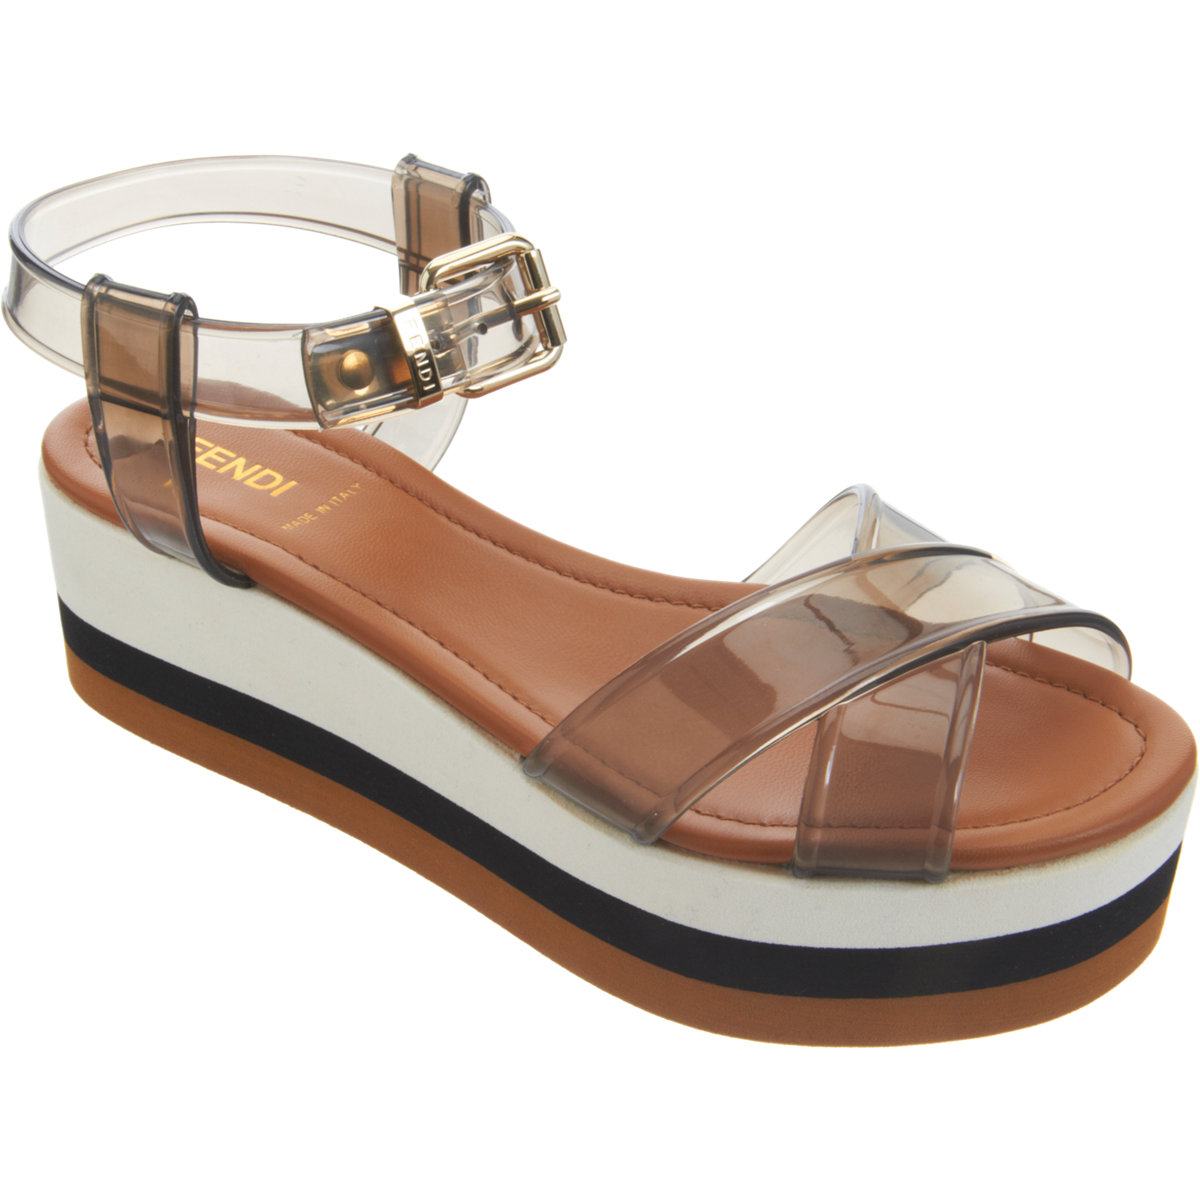 Fendi Translucent Strap Platform Sandal in Transparent ...